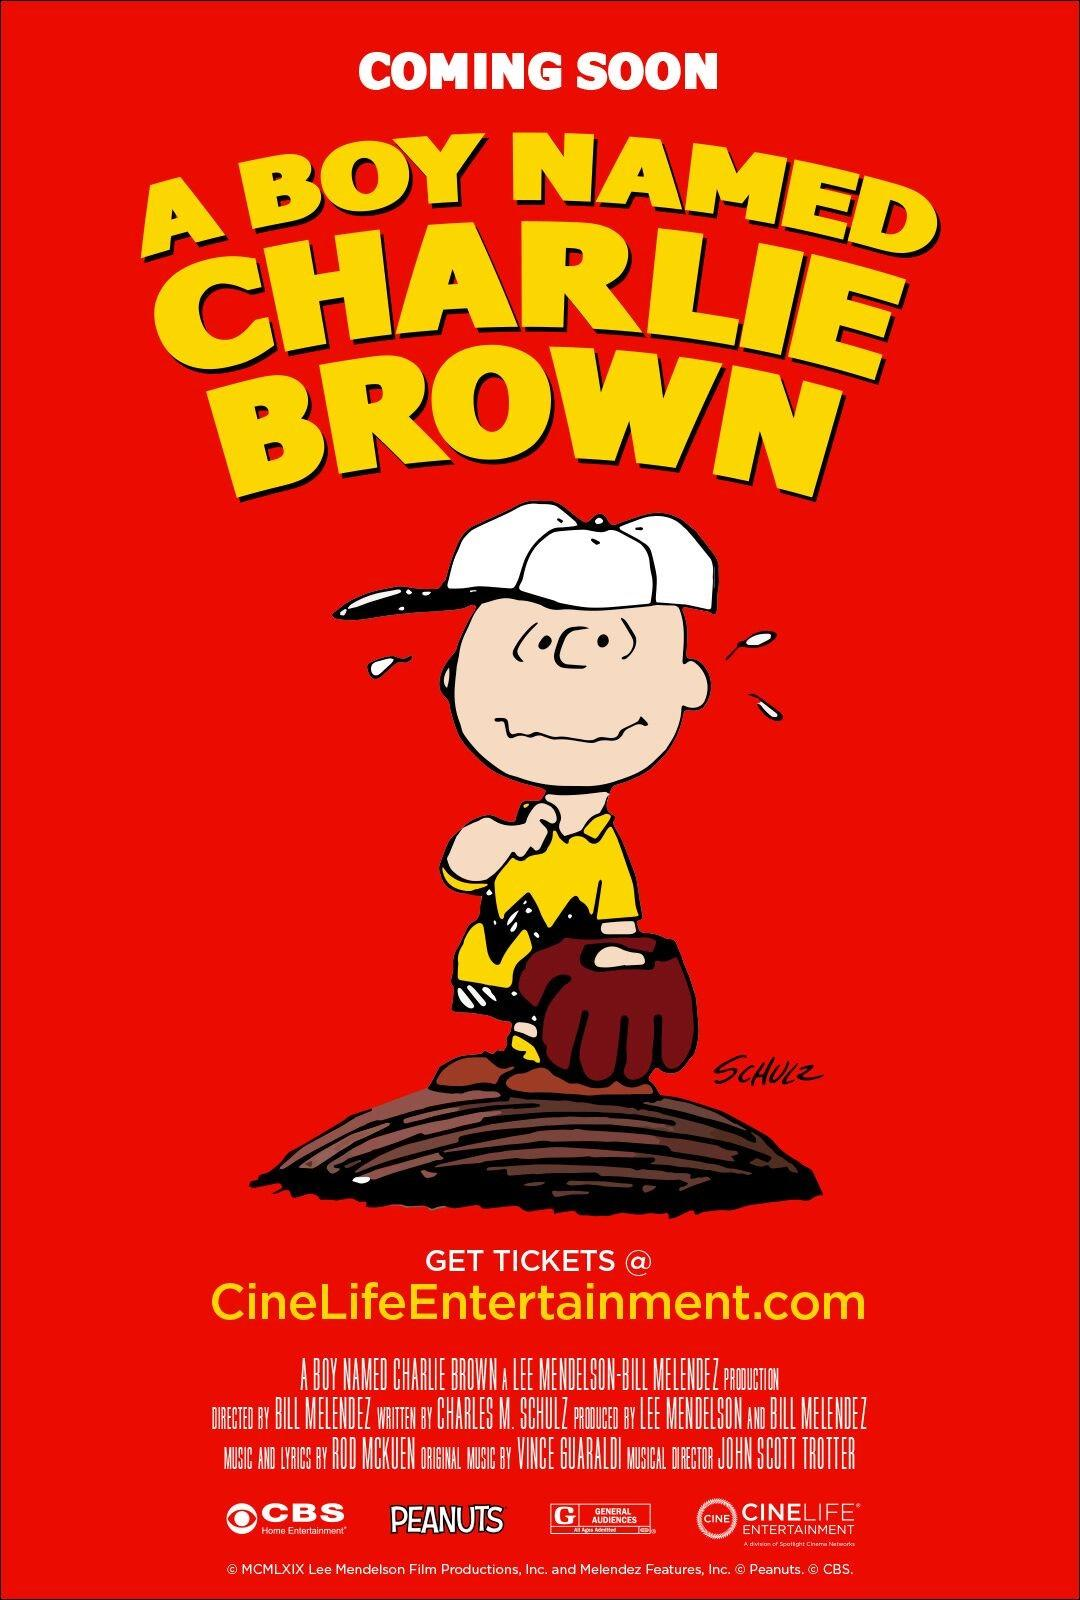 A Boy Named Charlie Brown poster art